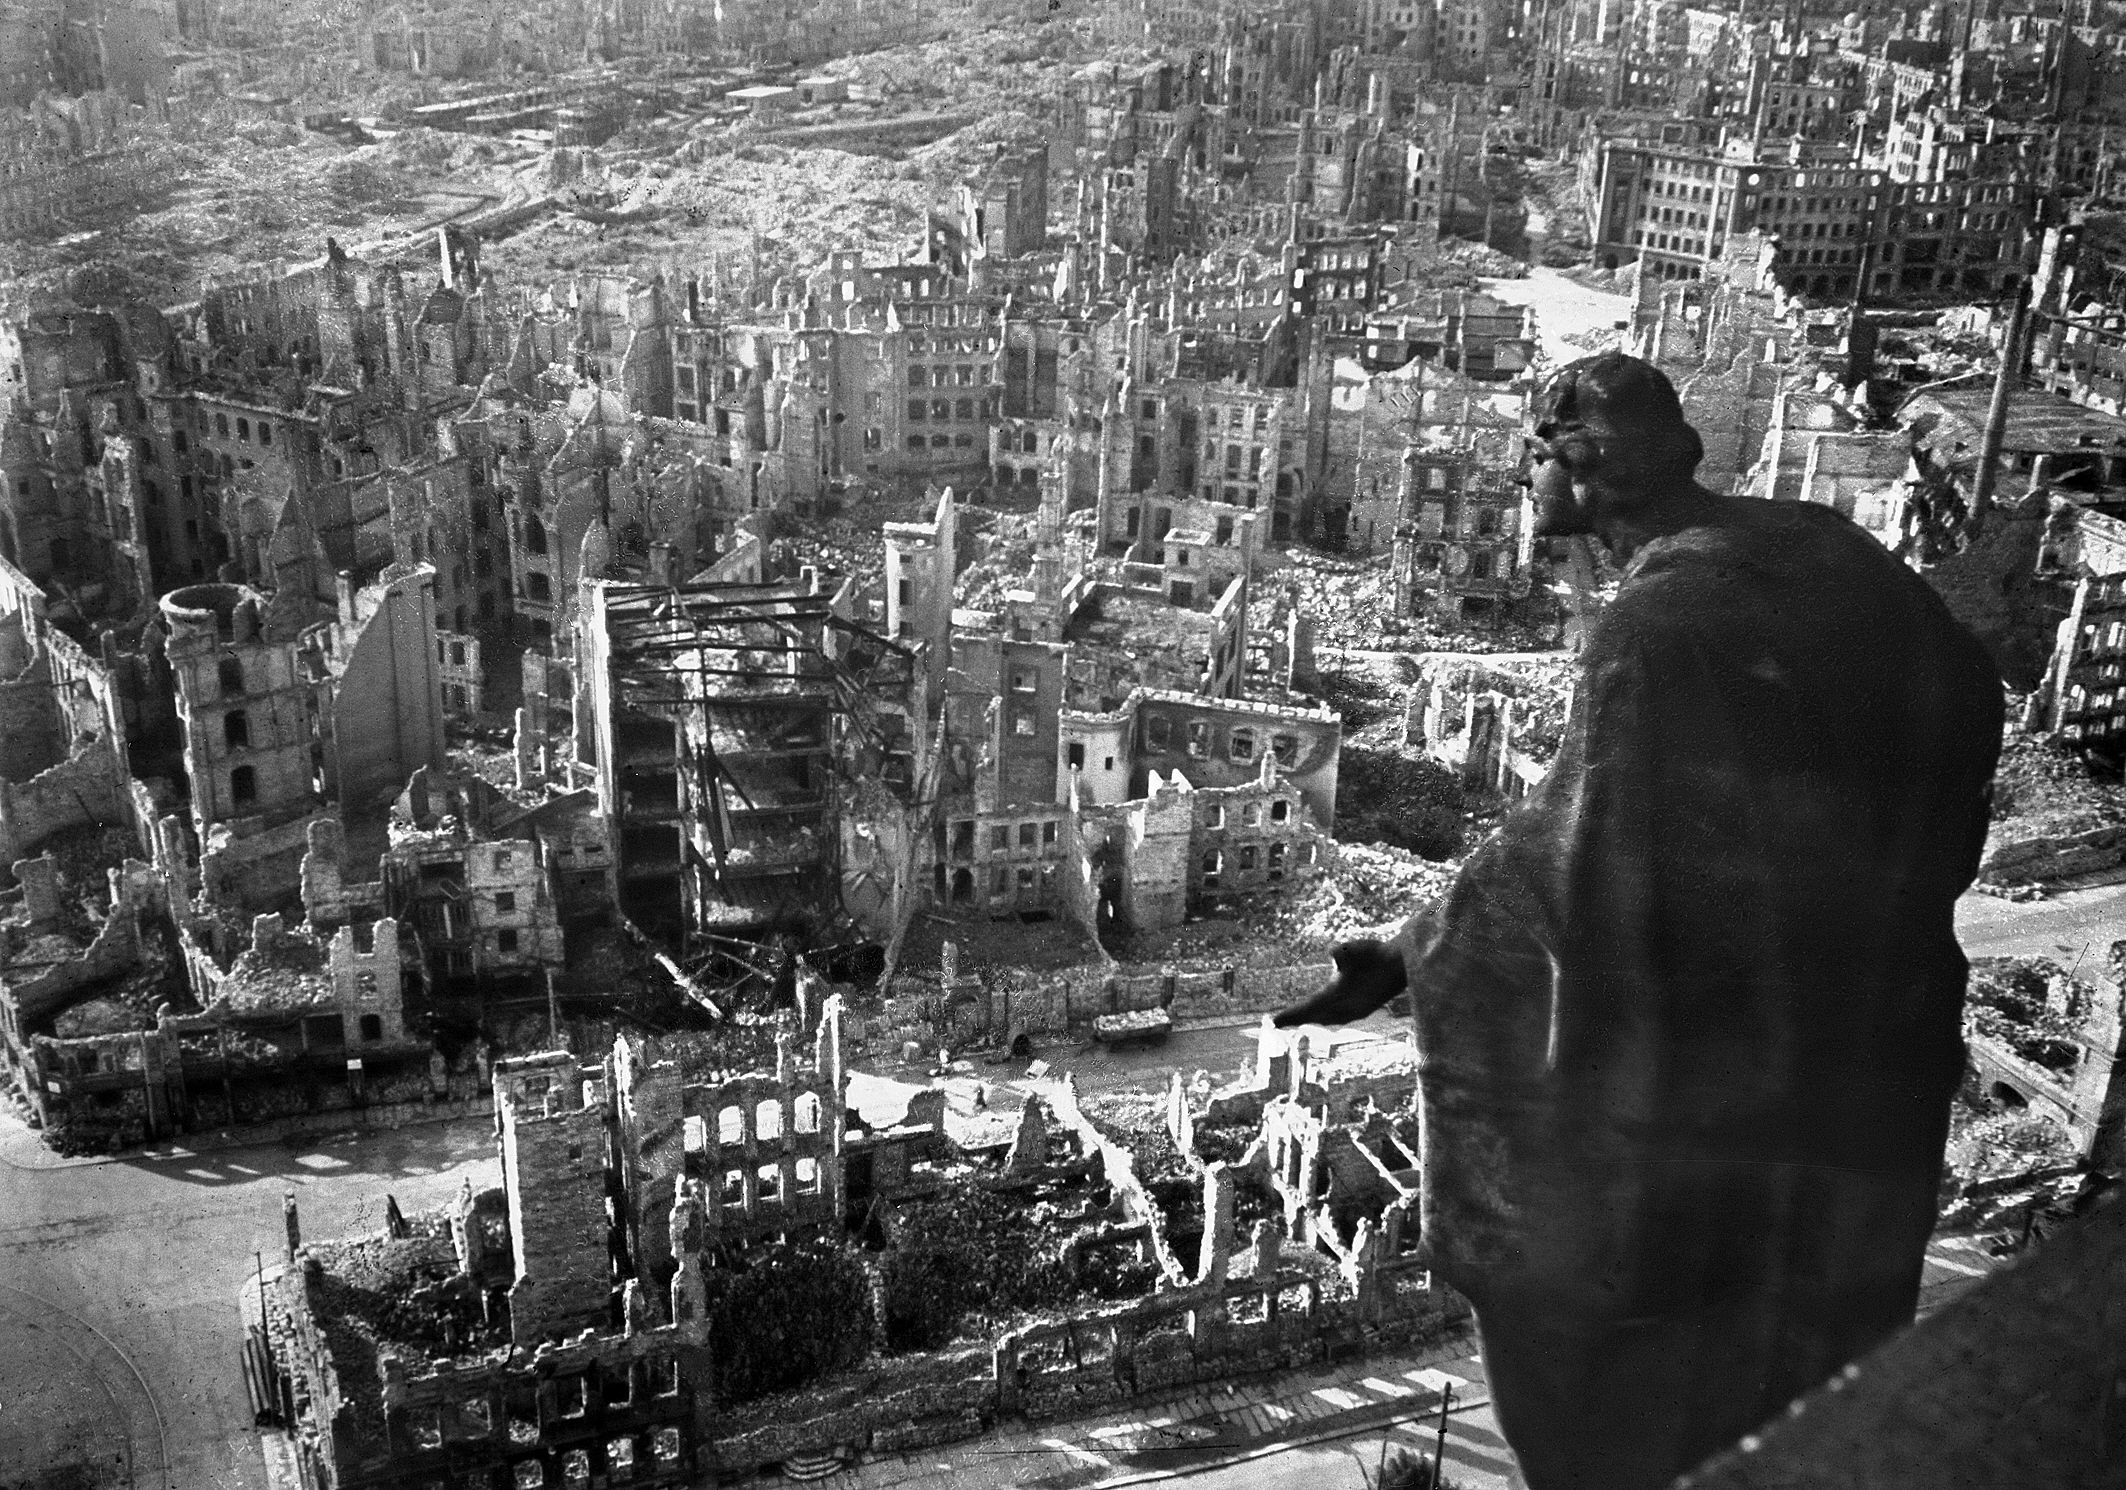 21 - Dresden, Germany, after allied bombings on 15 February 1945